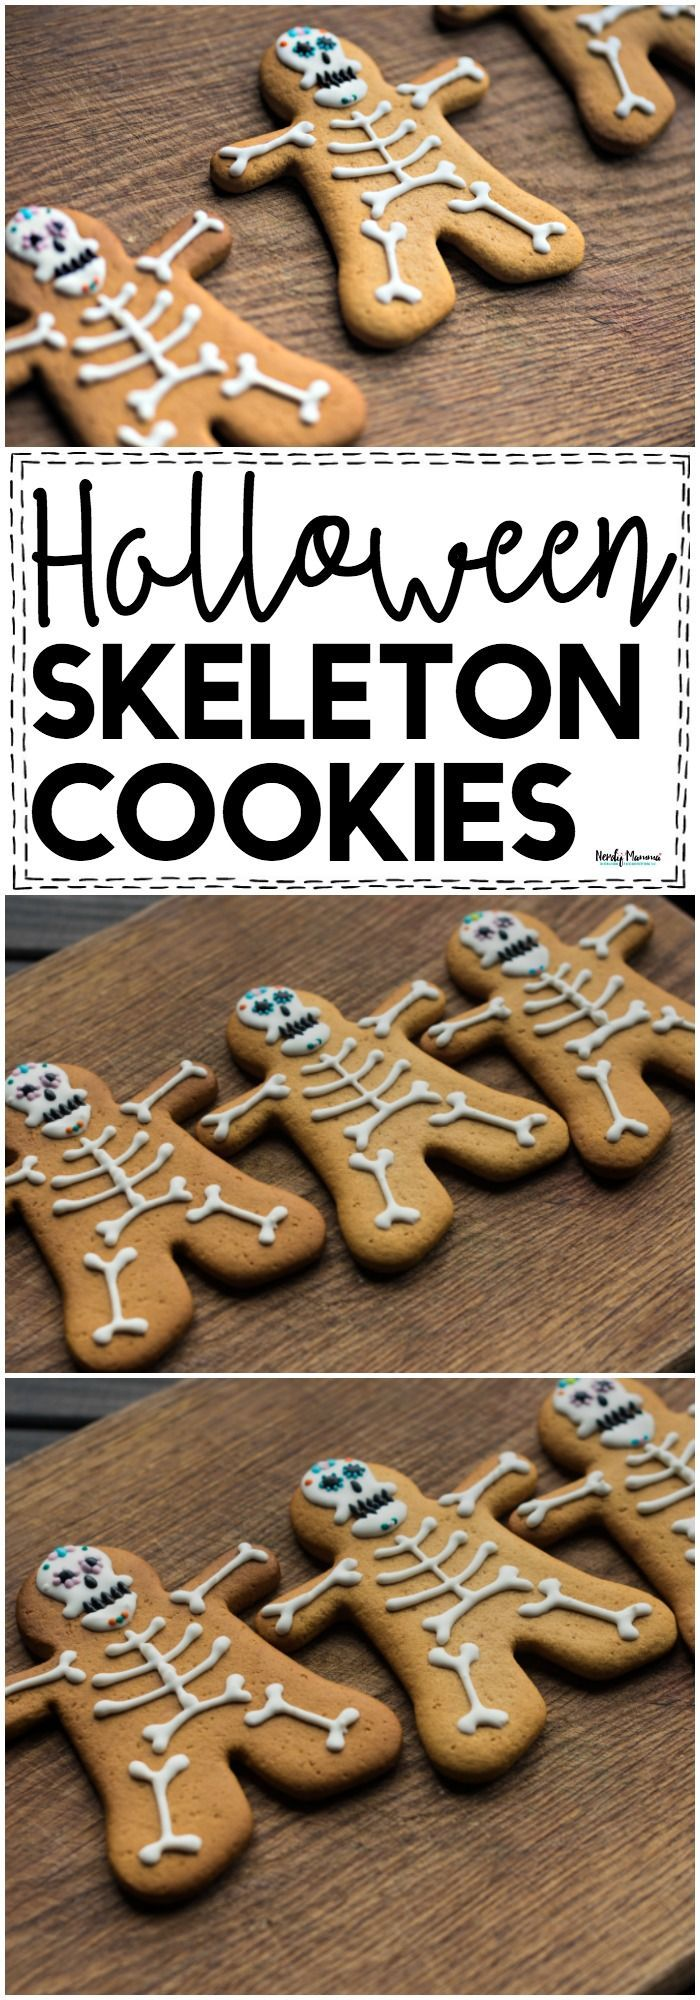 check out these soft & delicious halloween skeleton cookies! they're